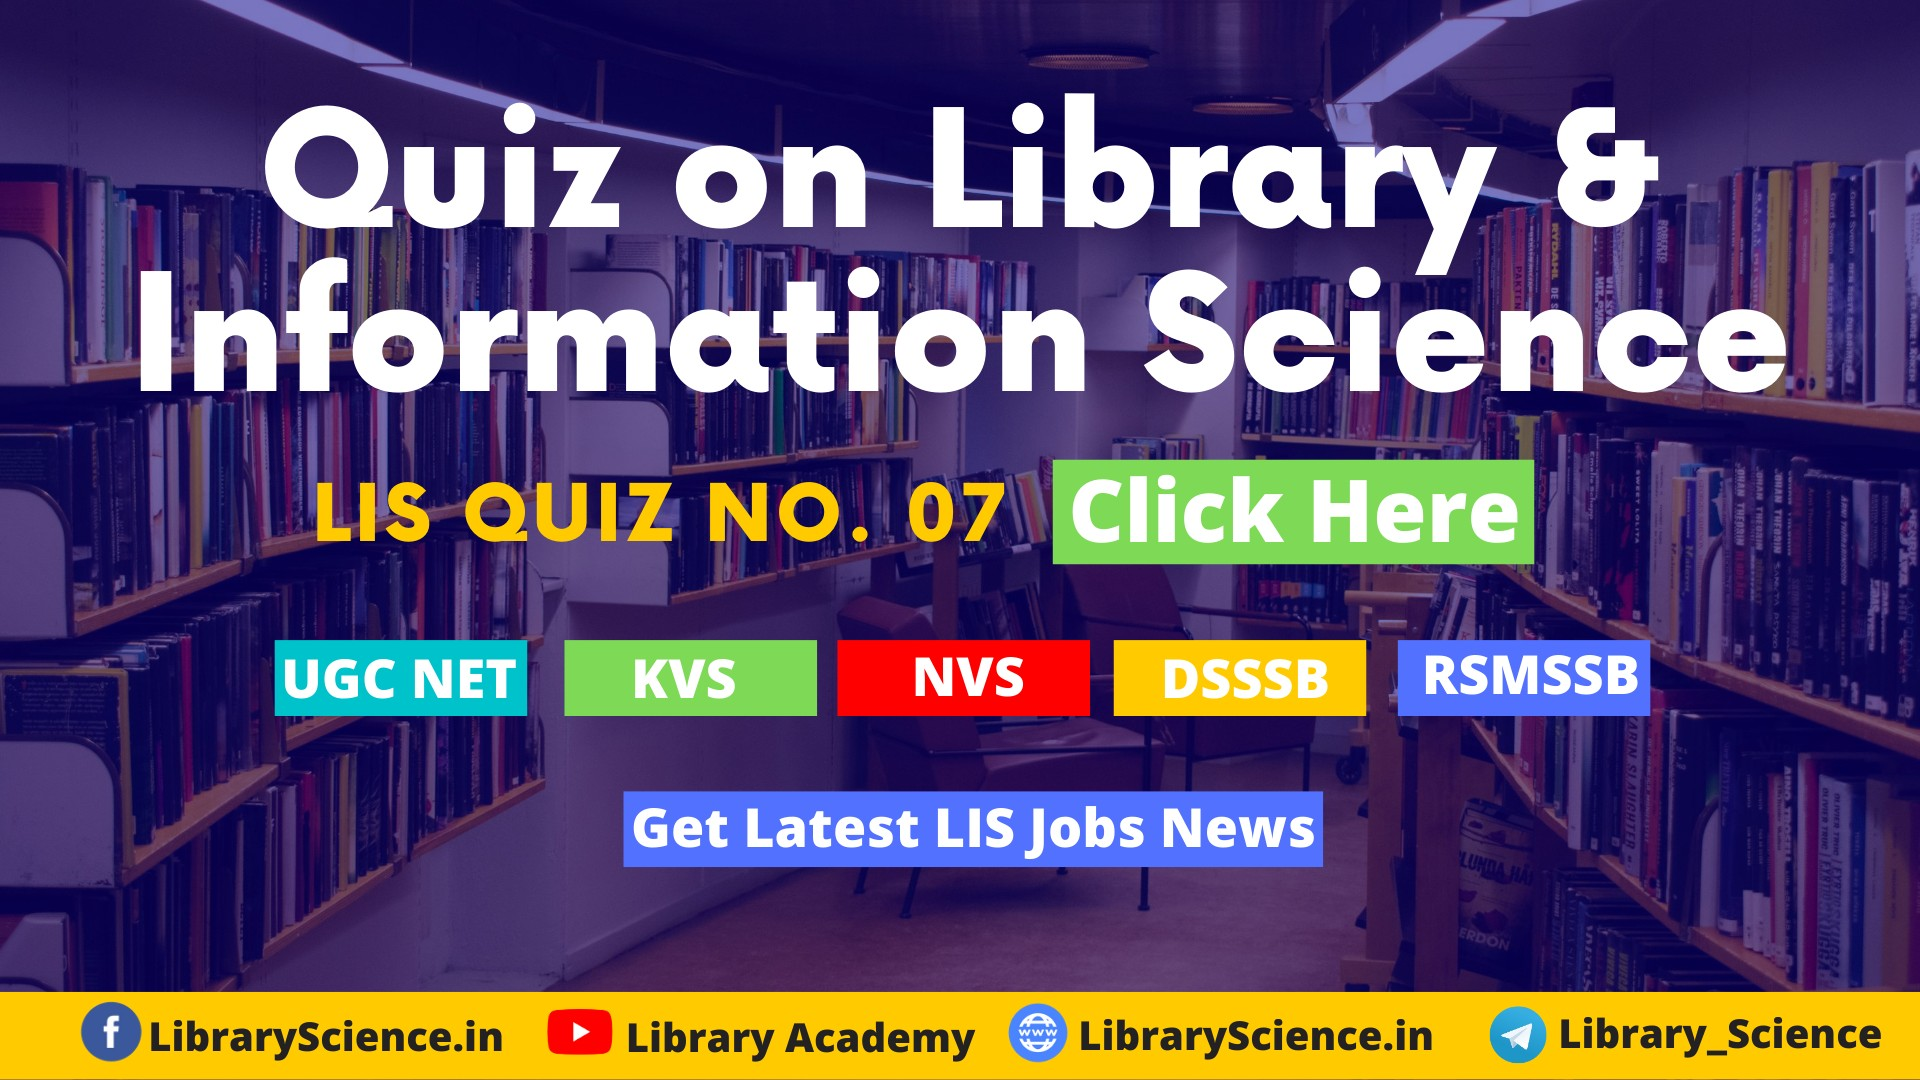 Quizzes on Library and Information Science